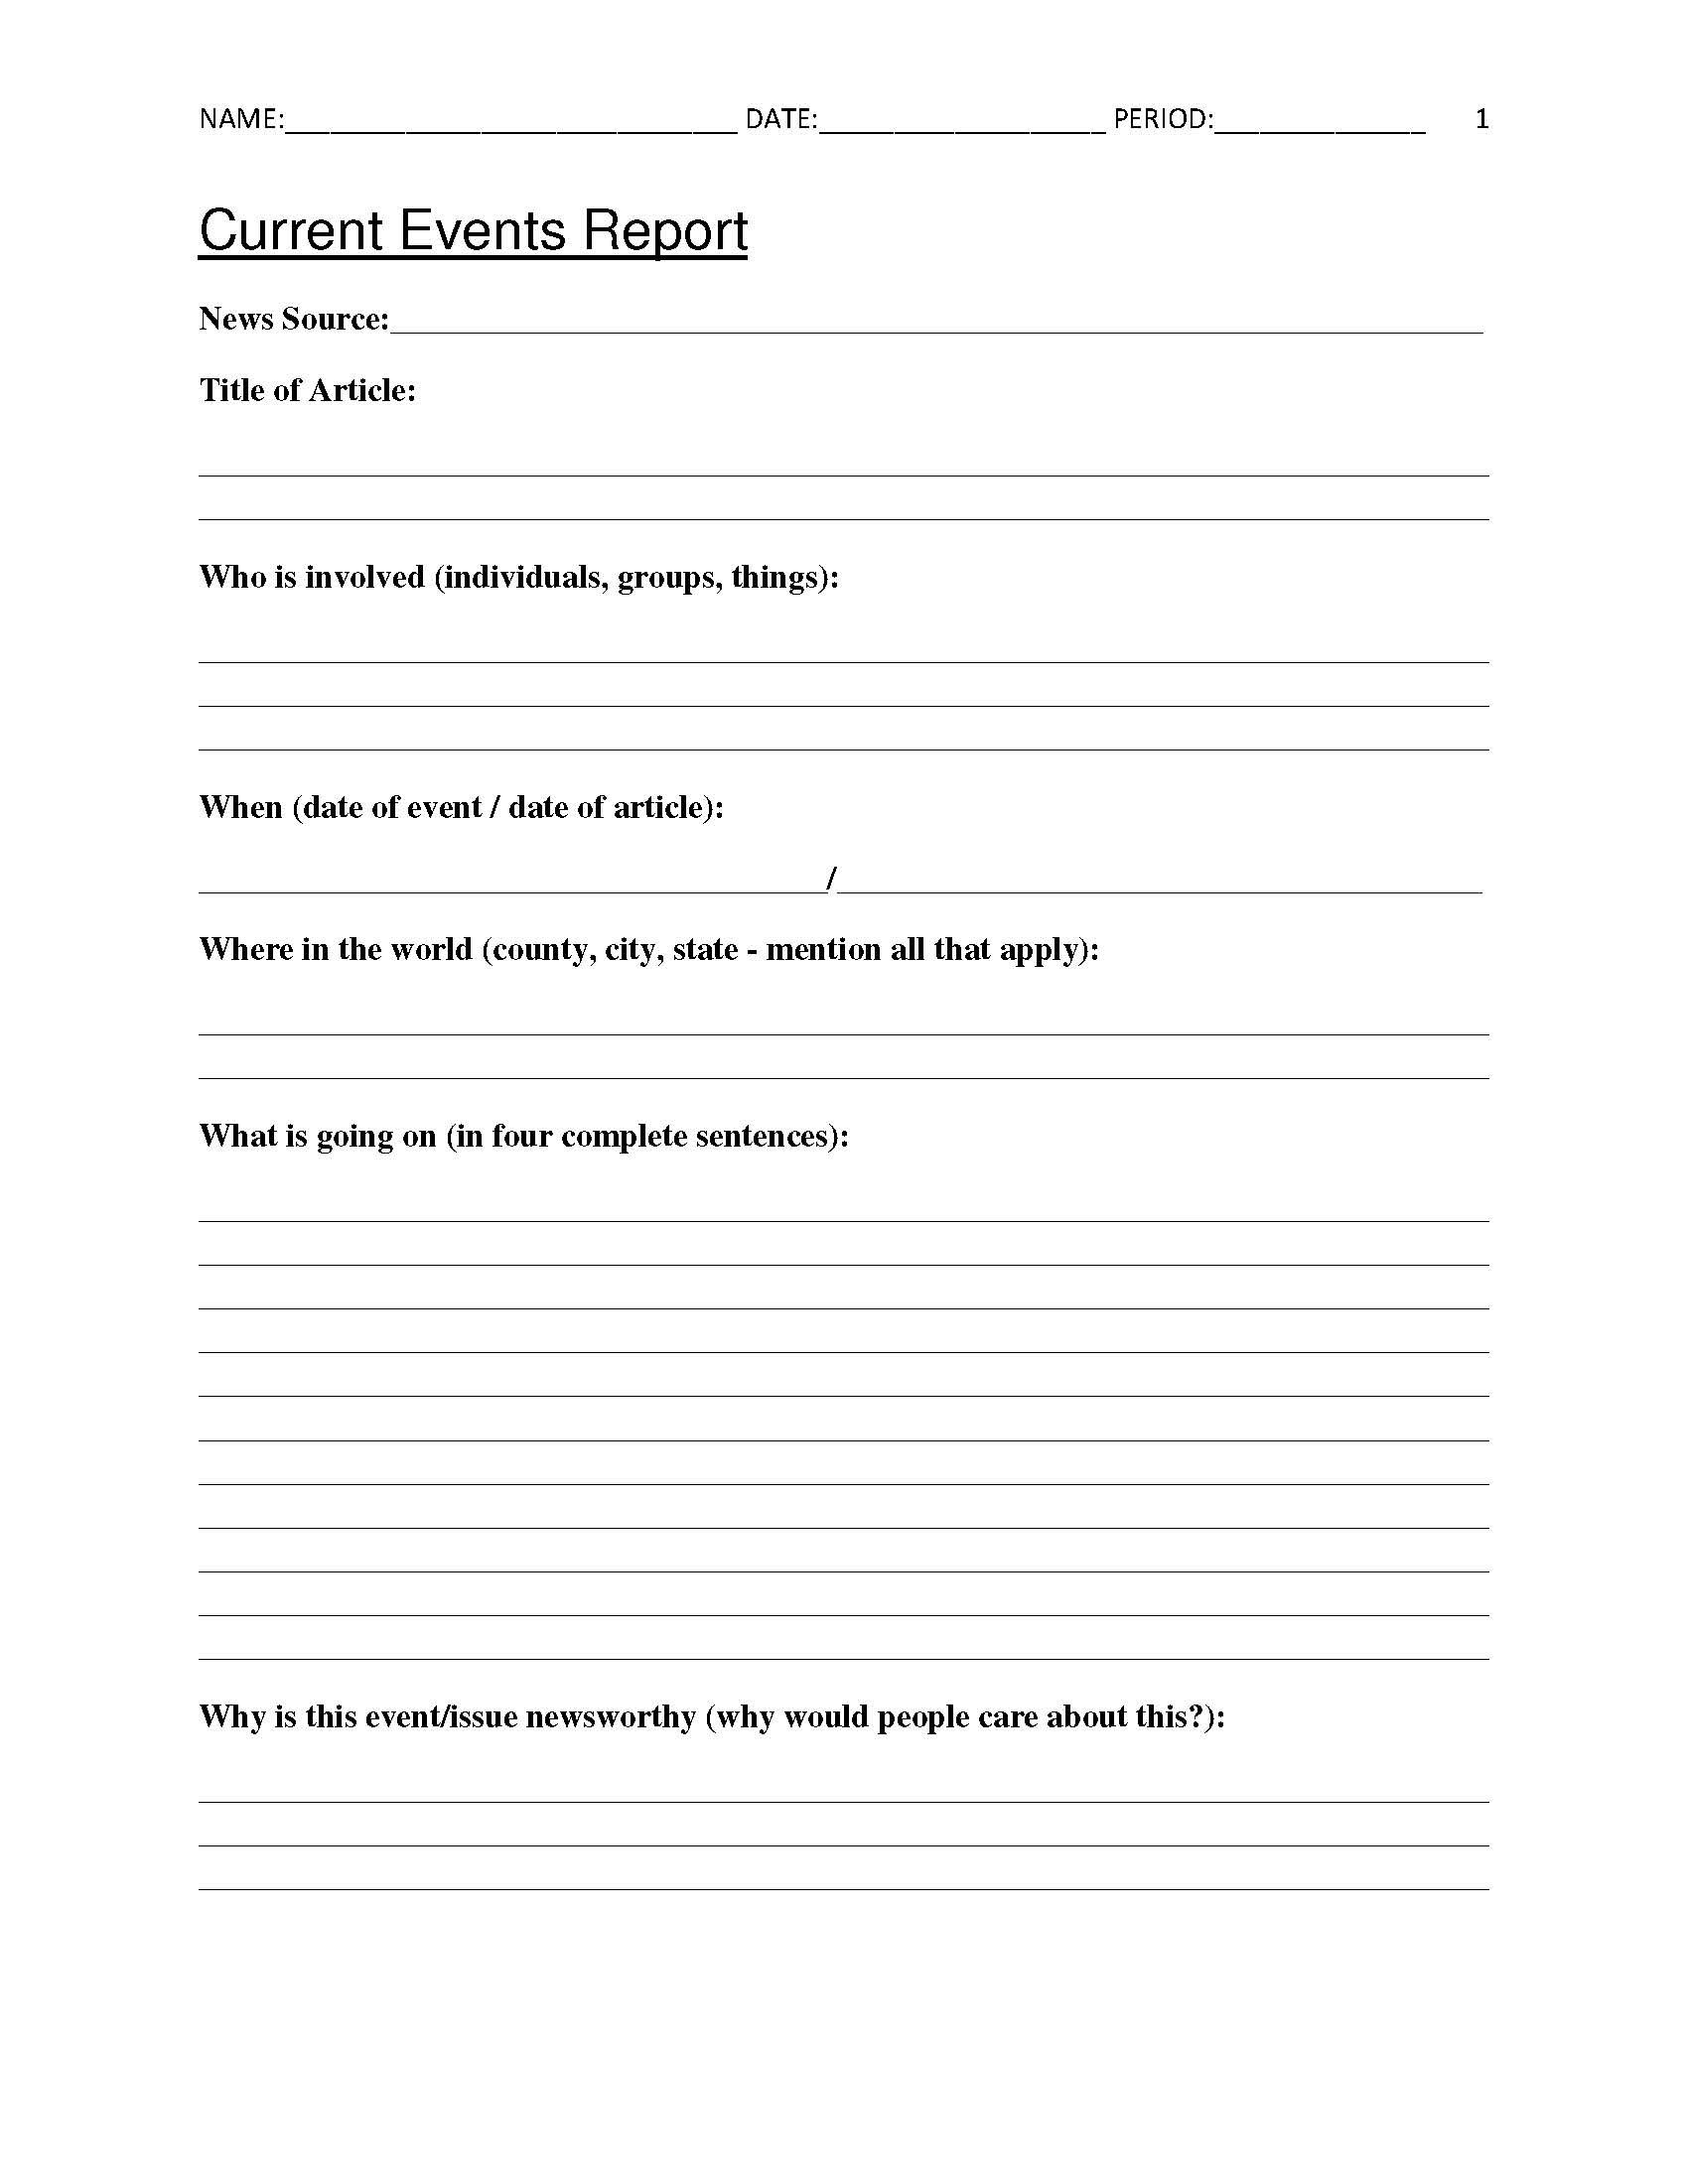 Free Current Events Report Worksheet For Classroom